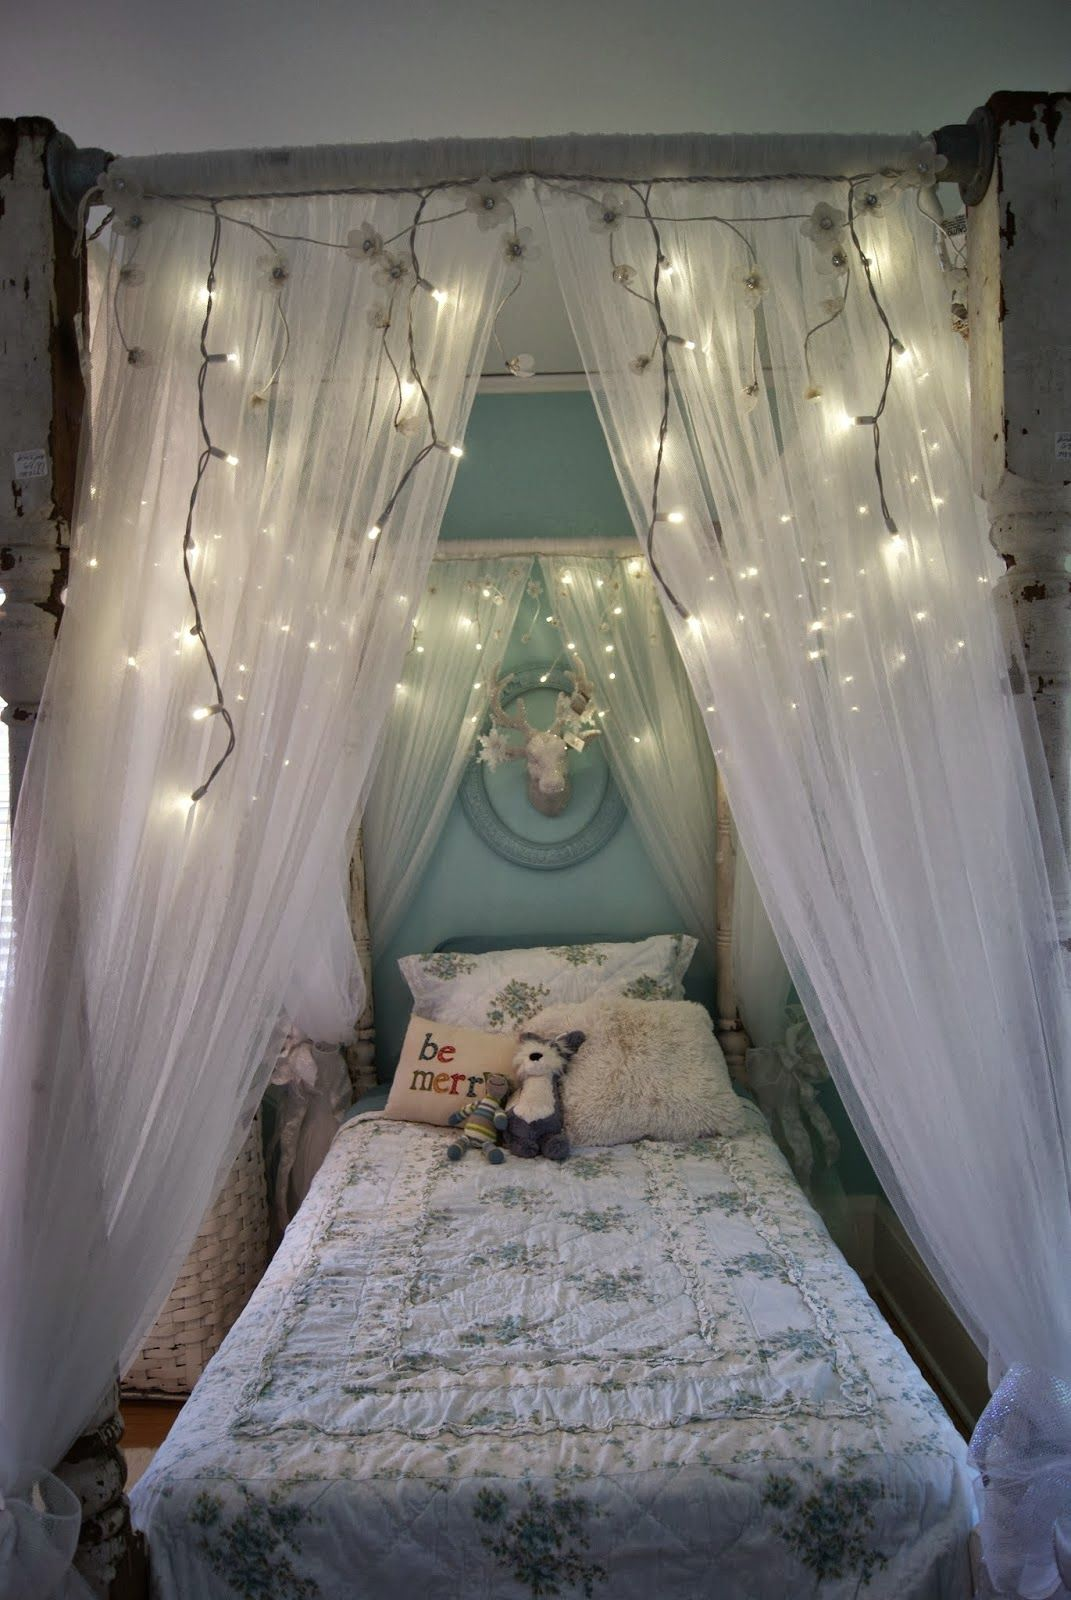 Ideas for DIY Canopy Bed Frame and Curtains & Ideas for DIY Canopy Bed Frame and Curtains | Canopy bed frame ...